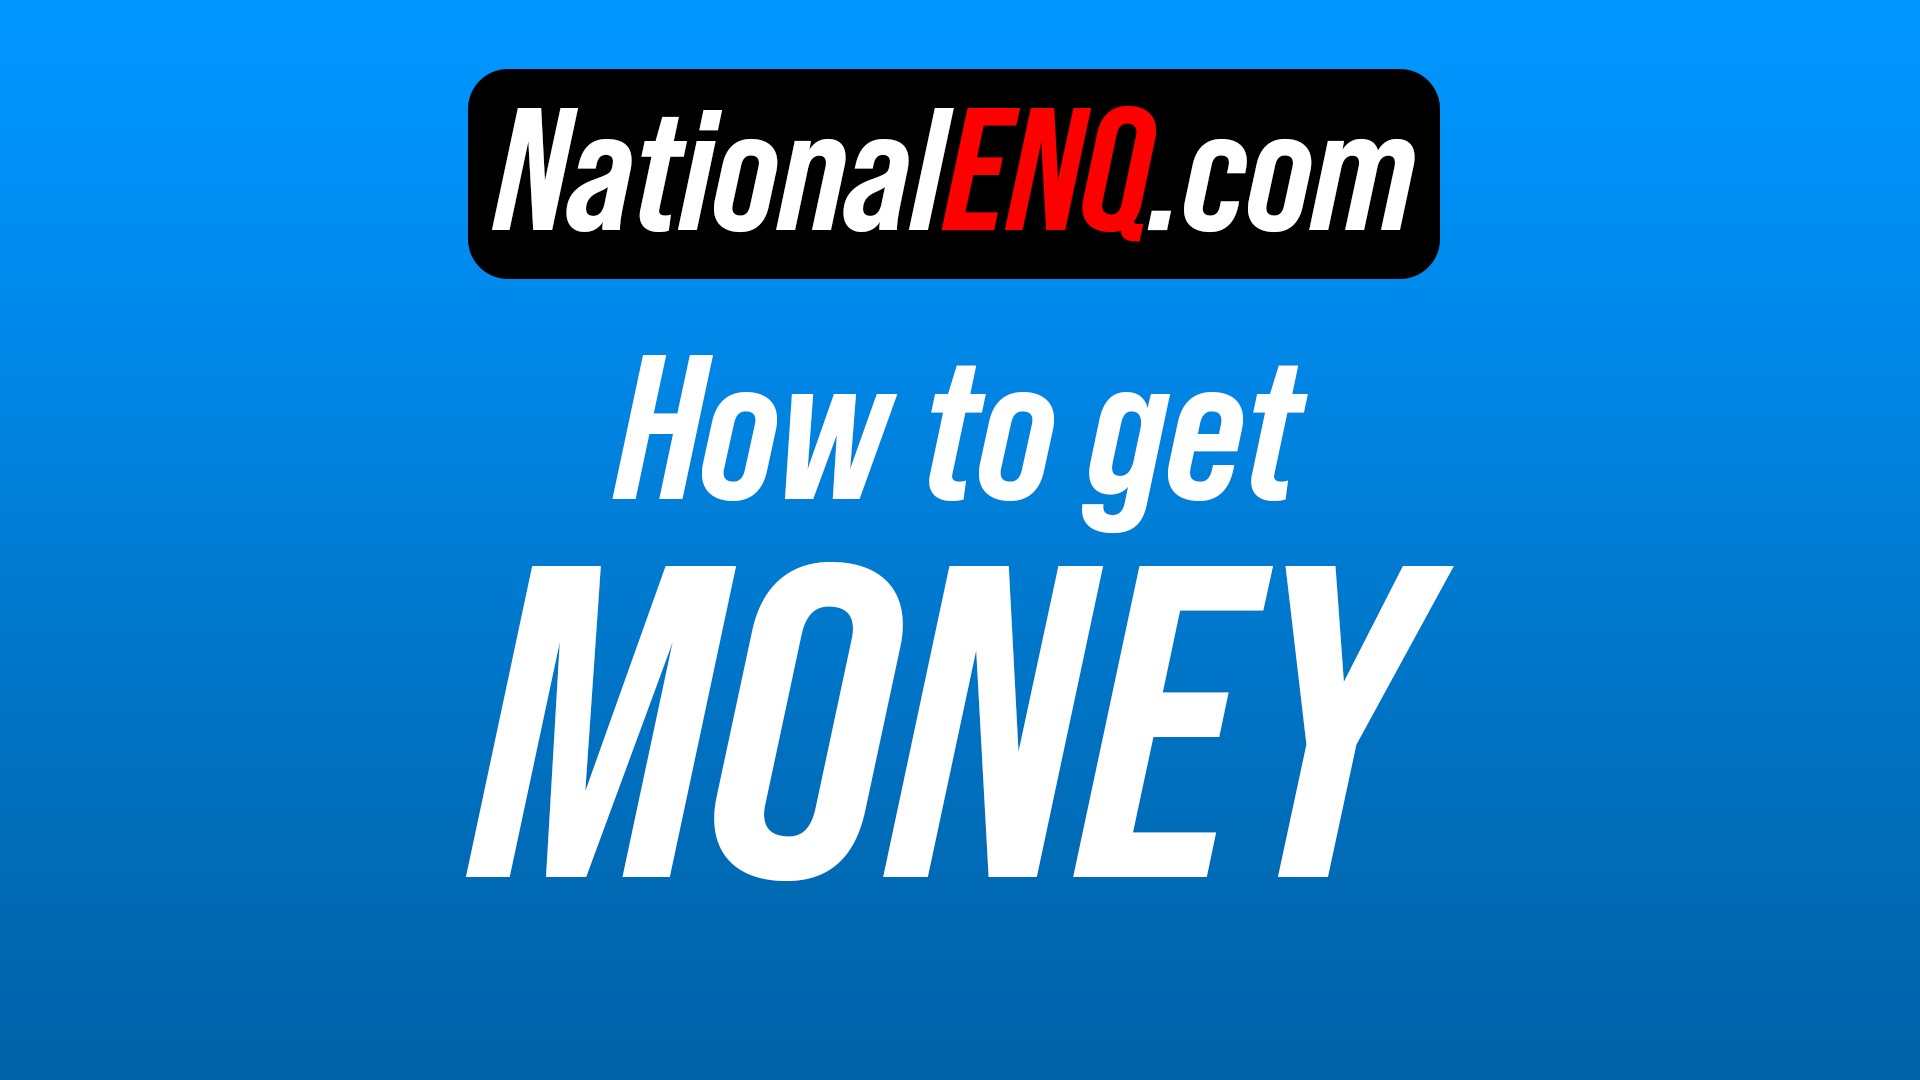 National ENQ Guide to Angel Investors, Venture Capital Firms, Money Lenders. Where to Find a Good Loan & Funding from Business Angels